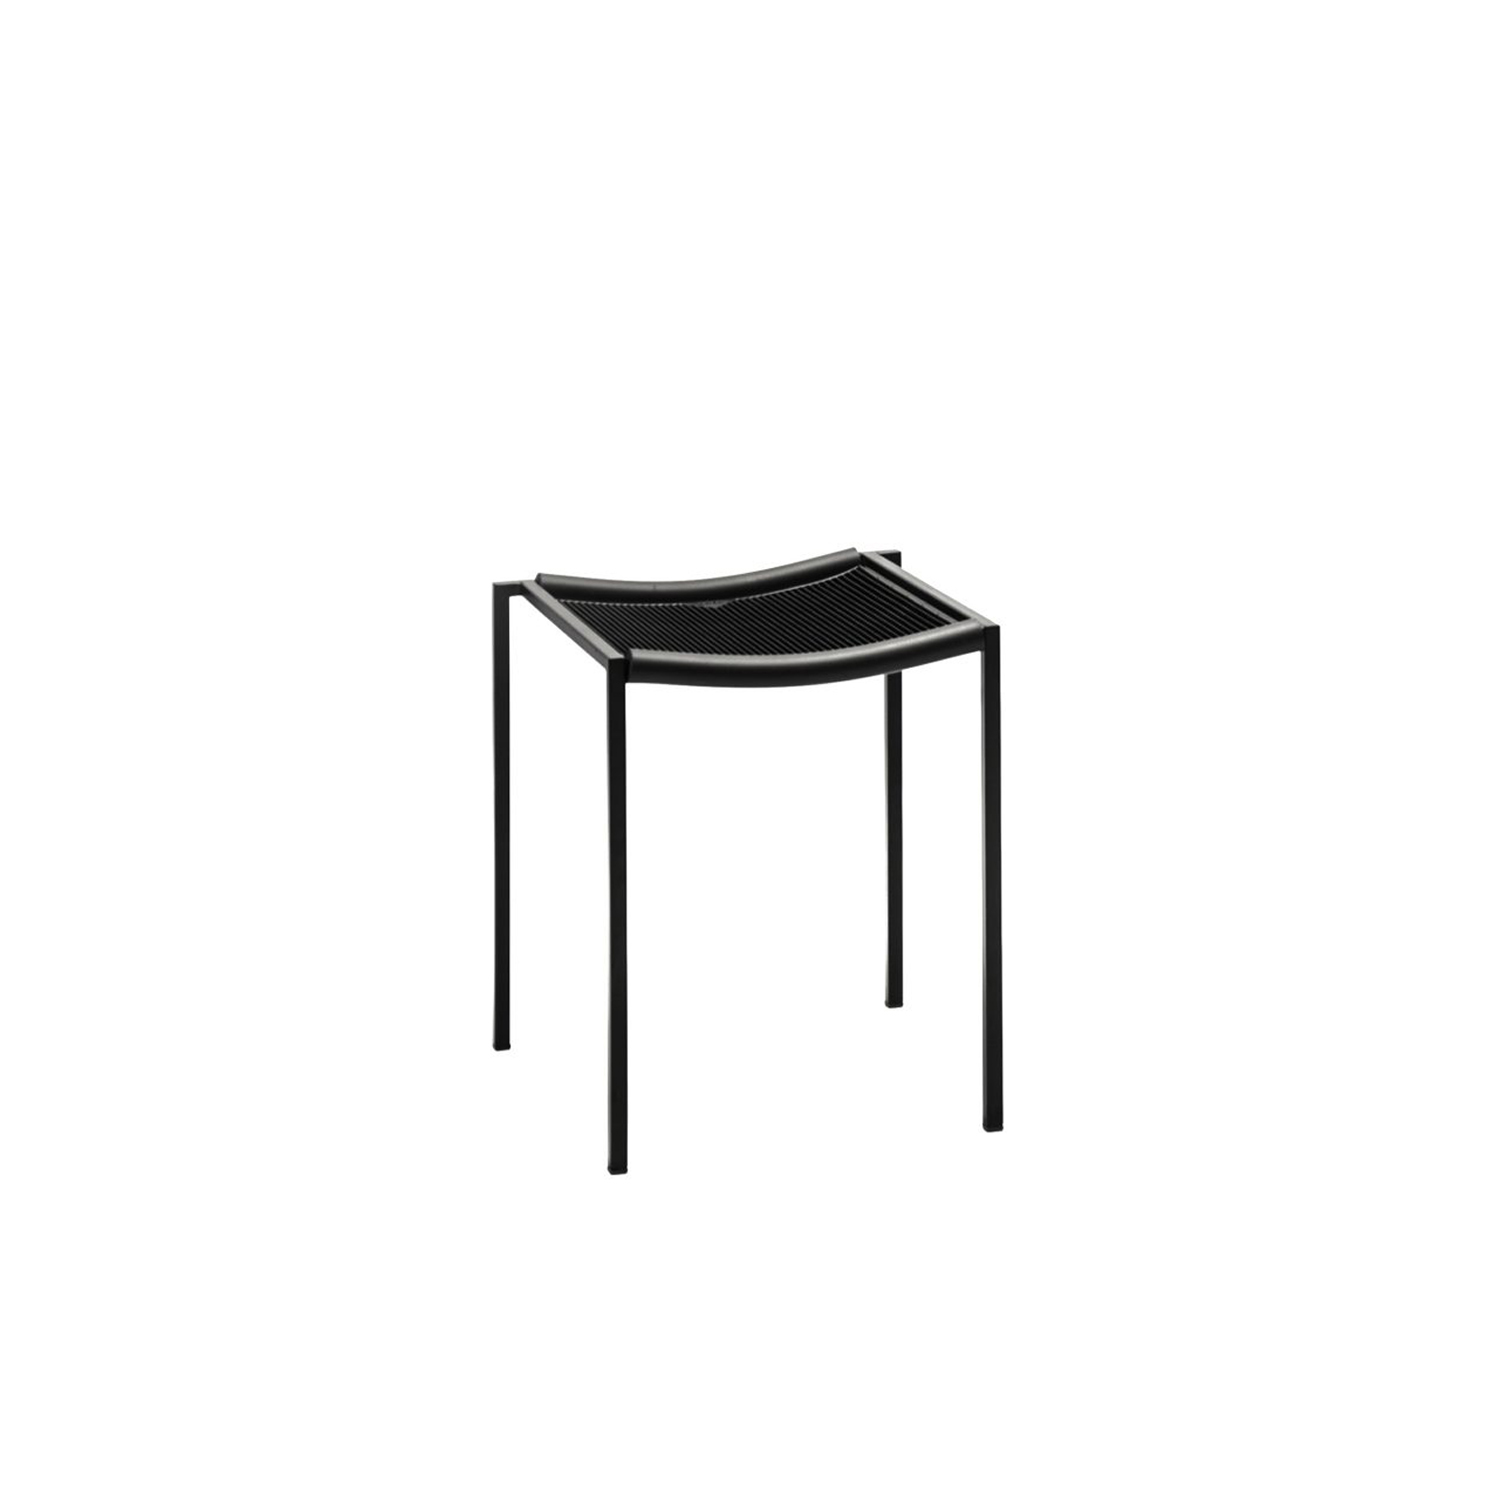 Sgabello Basso - The Sgabello Basso is the smaller variation to the Sgabello Alto. This stool was also designed in 1984 by Maurizio Peregalli. This elegant and functional stool has many of the same materials and finishes as the Alto. It features a steel tubular frame epoxy painted in semi opague black and the seat is crafted in thousand points rubber with black extruded rubber. This stool is also stackable.   | Matter of Stuff